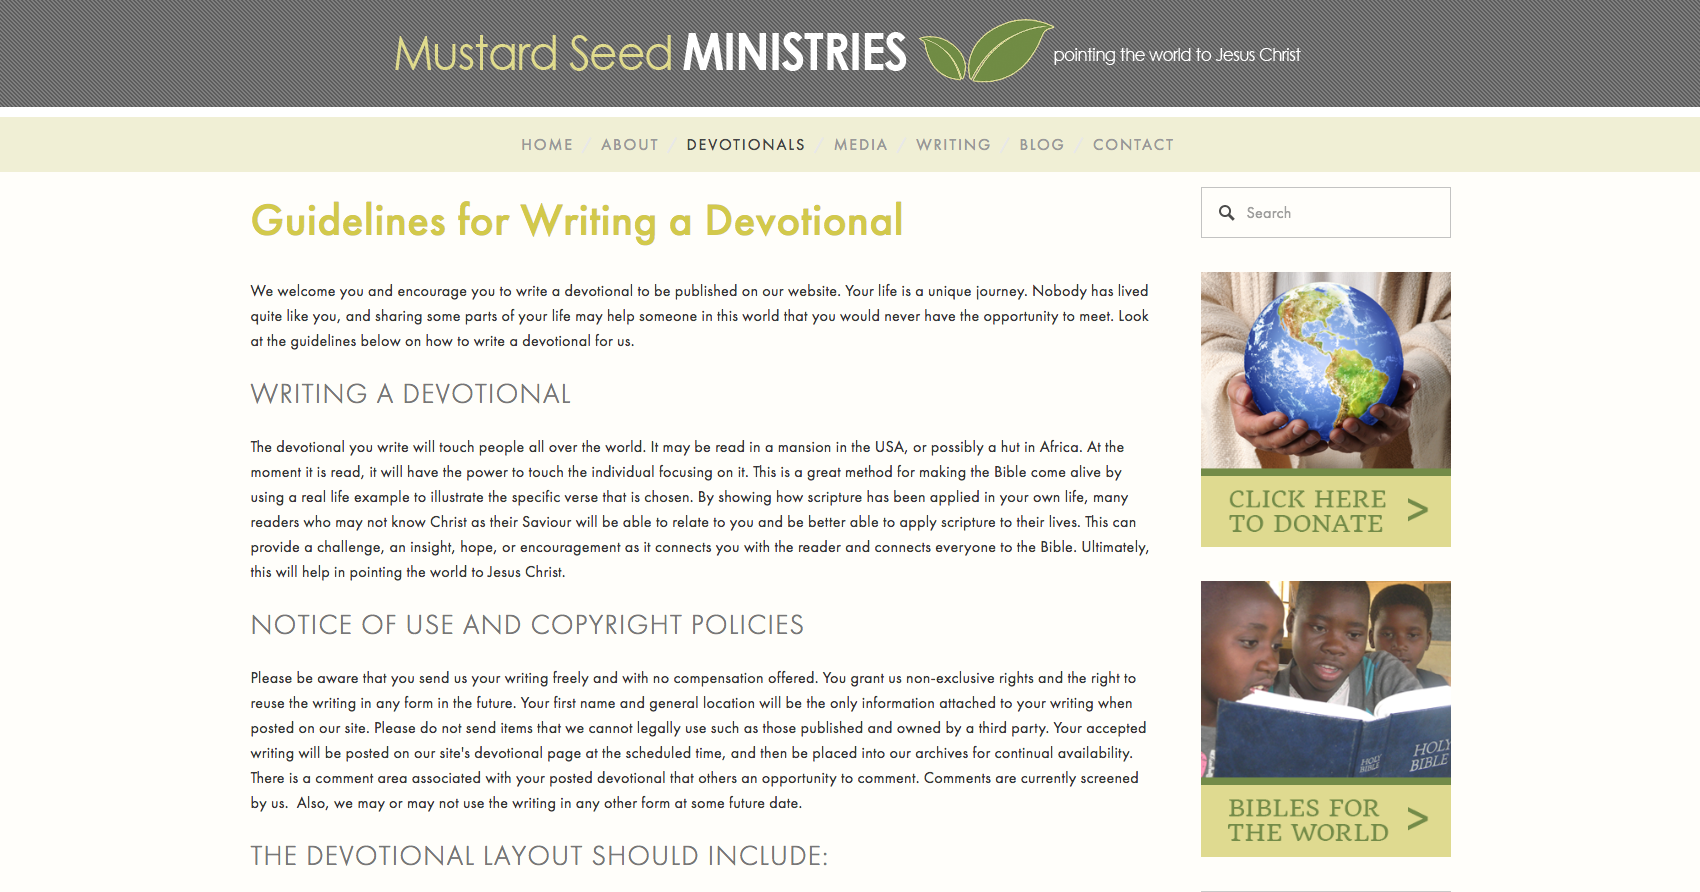 Mustard Seed Ministries Guidelines page